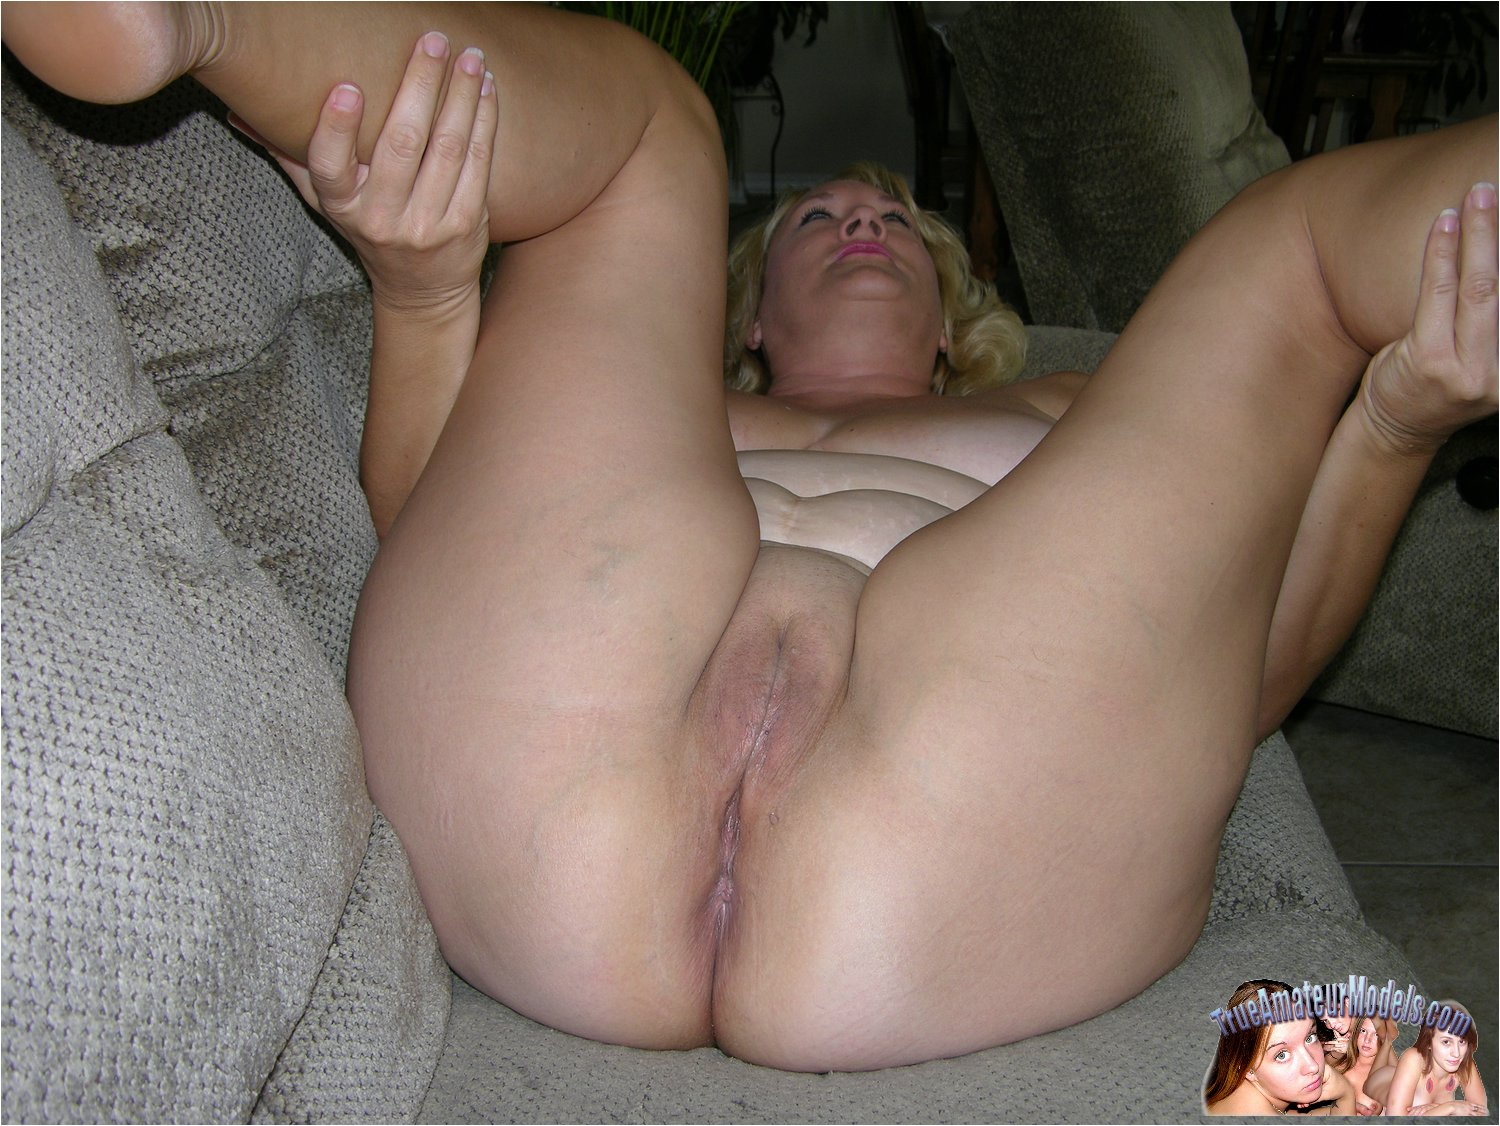 Nude mature plump ass congratulate, your